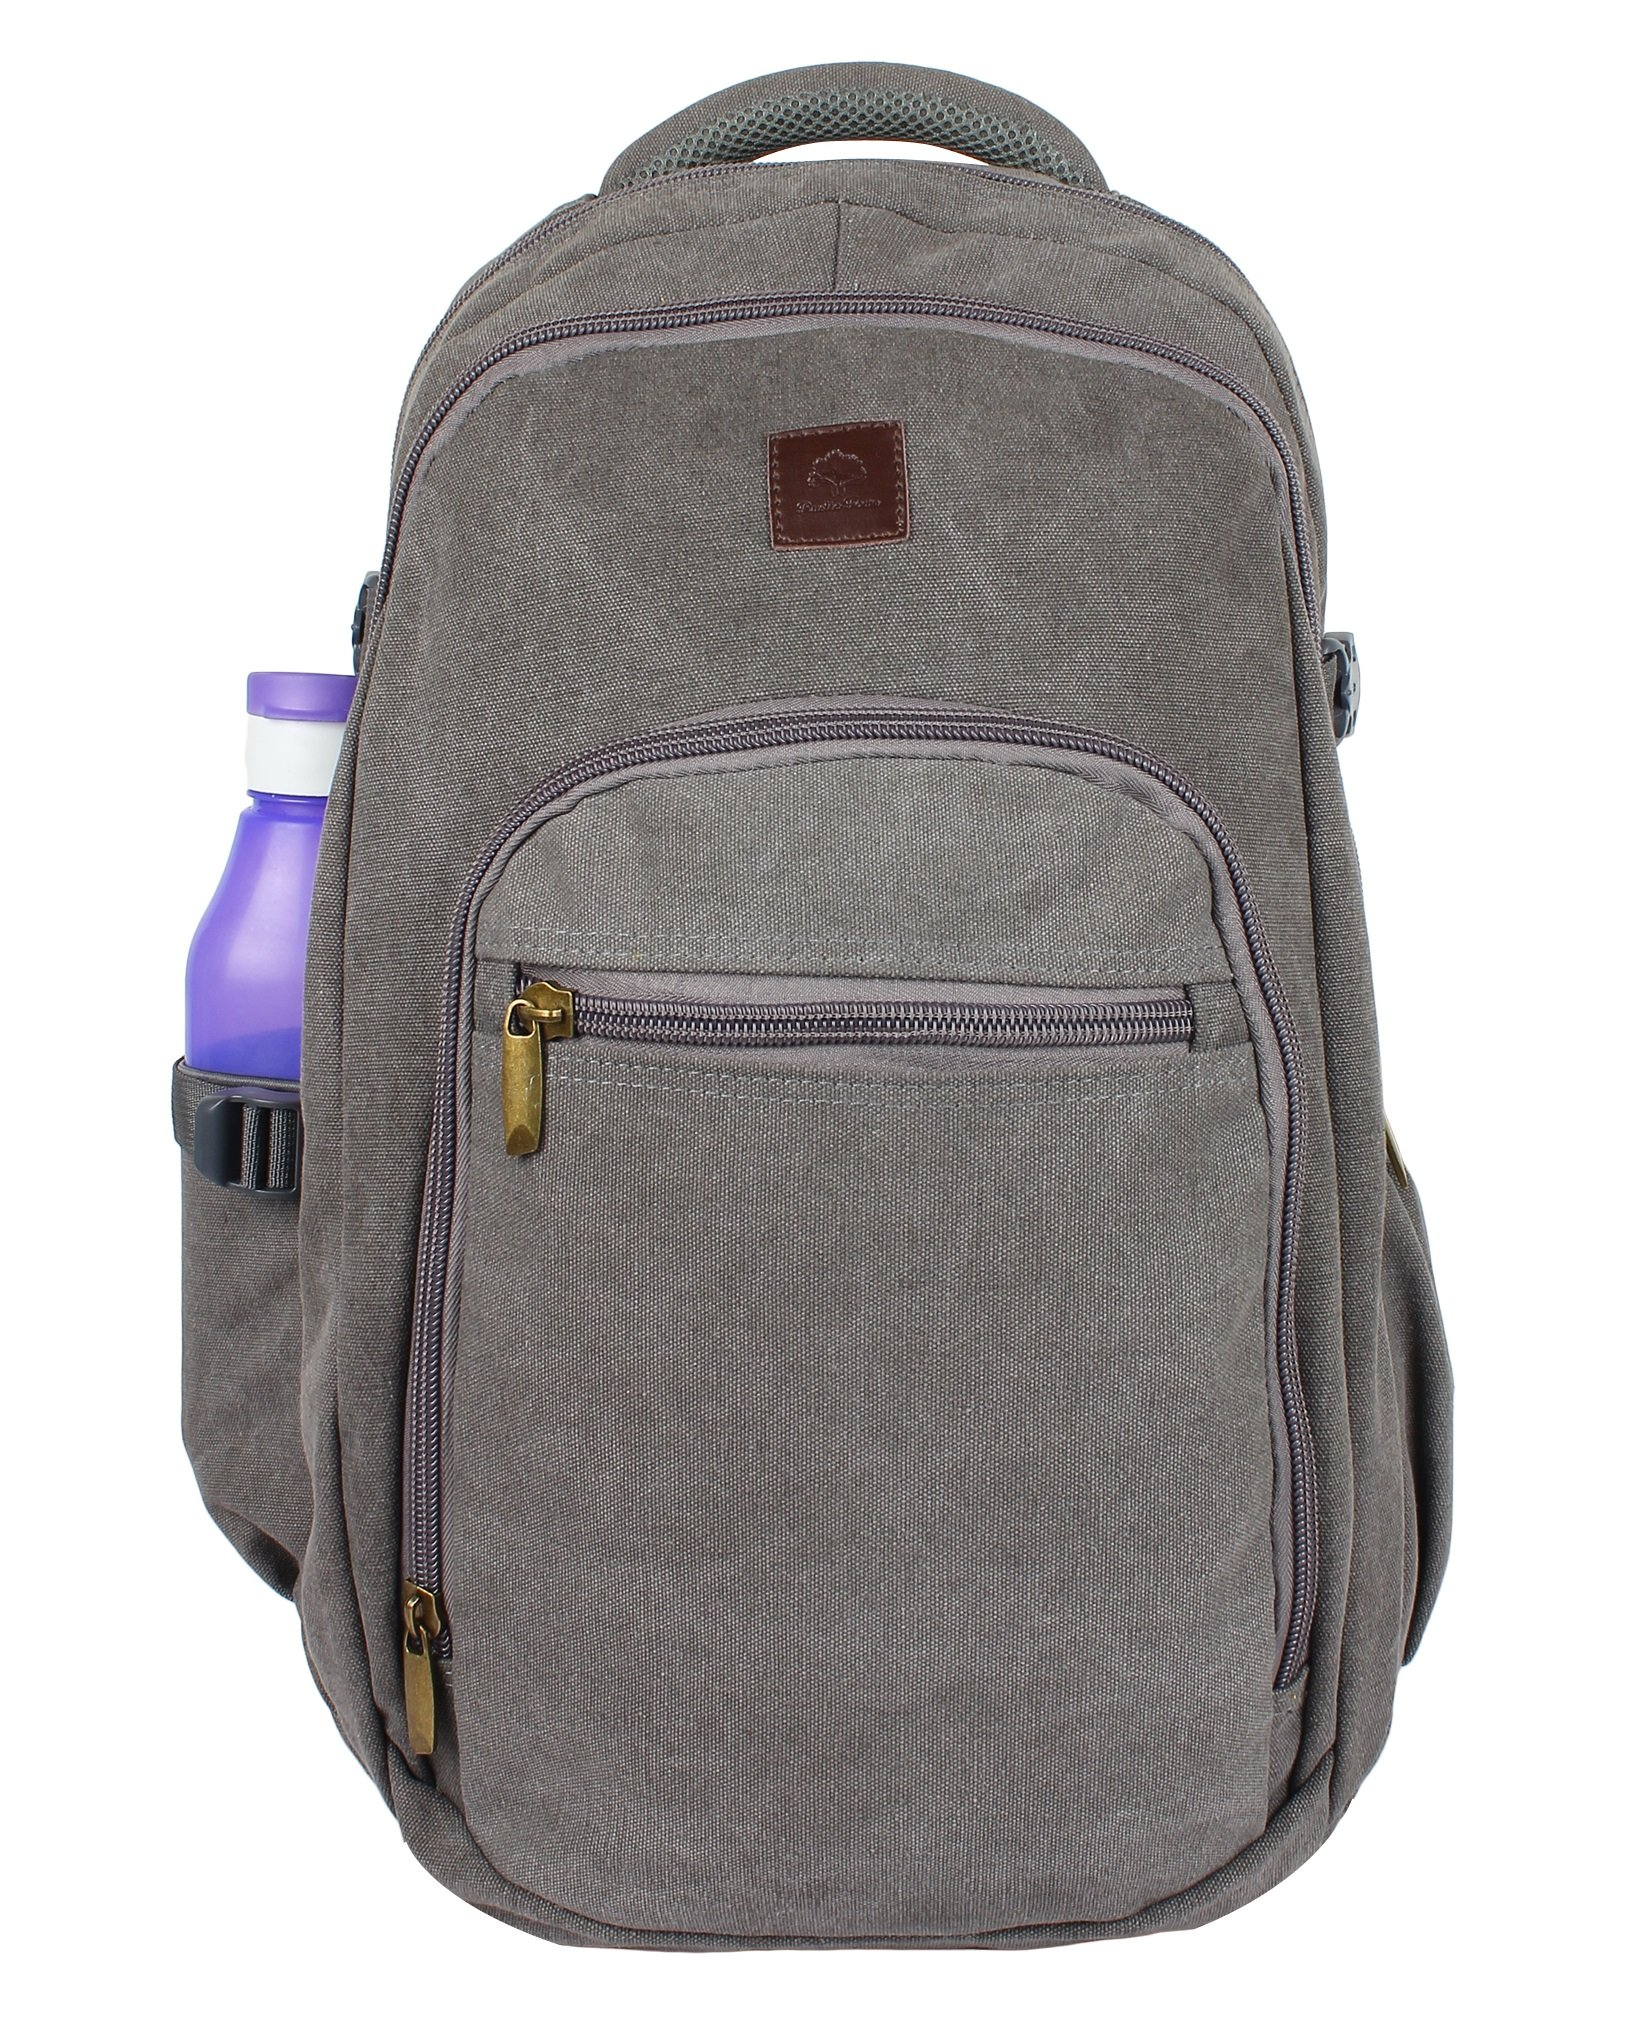 Rustic Town Canvas backpack book laptop bags rucksack for student kids men women (Gray)